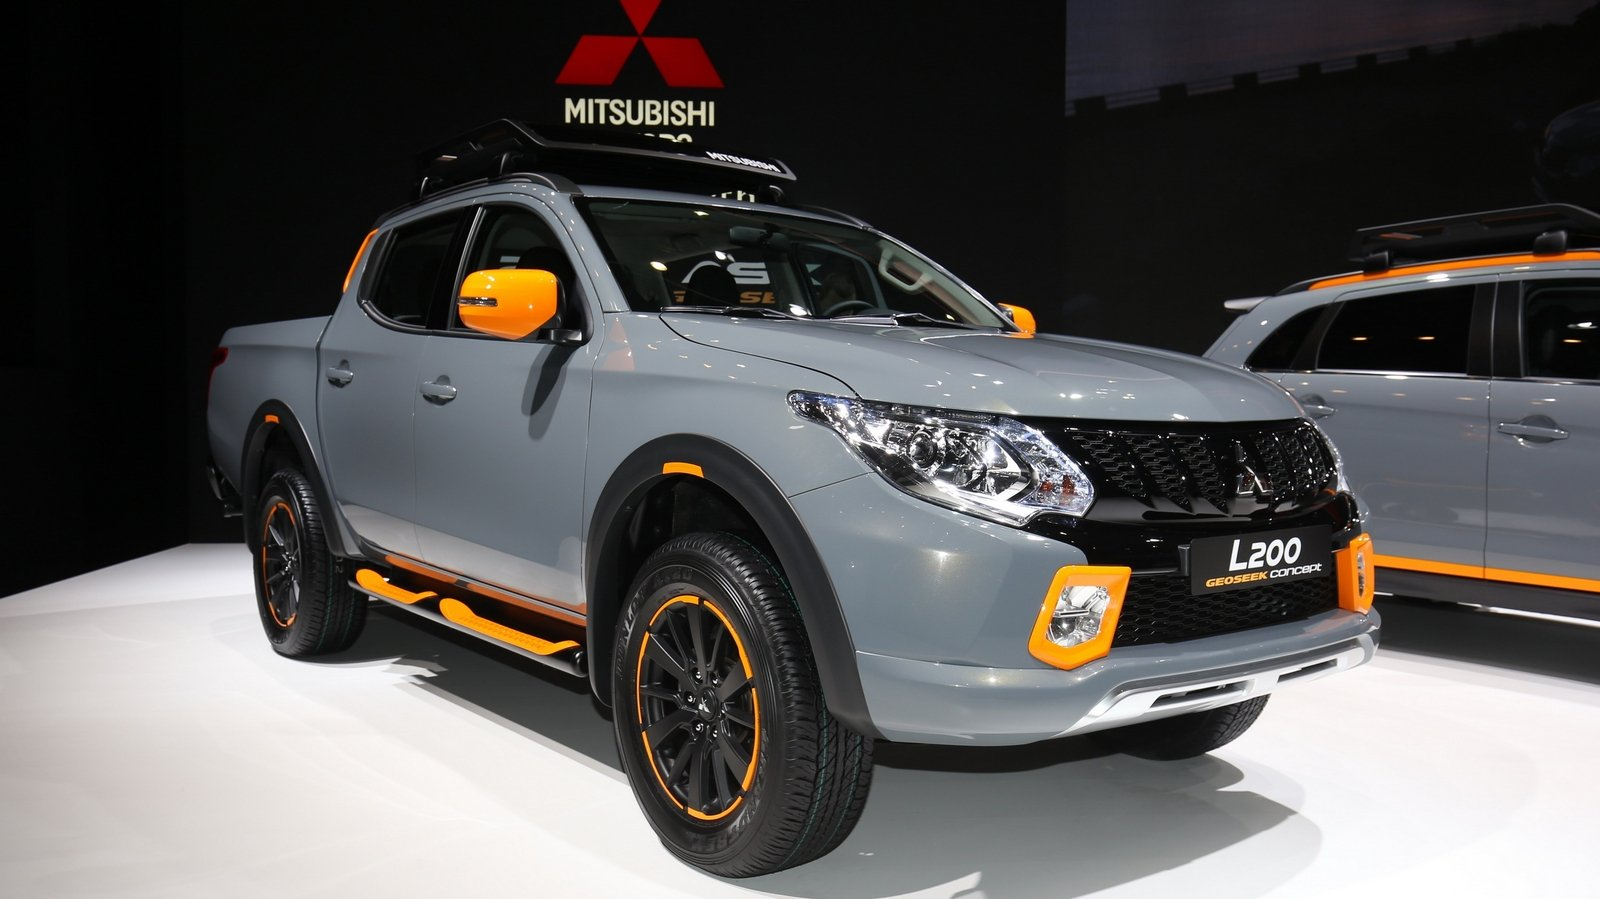 2016 mitsubishi l200 geoseek concept review top speed. Black Bedroom Furniture Sets. Home Design Ideas